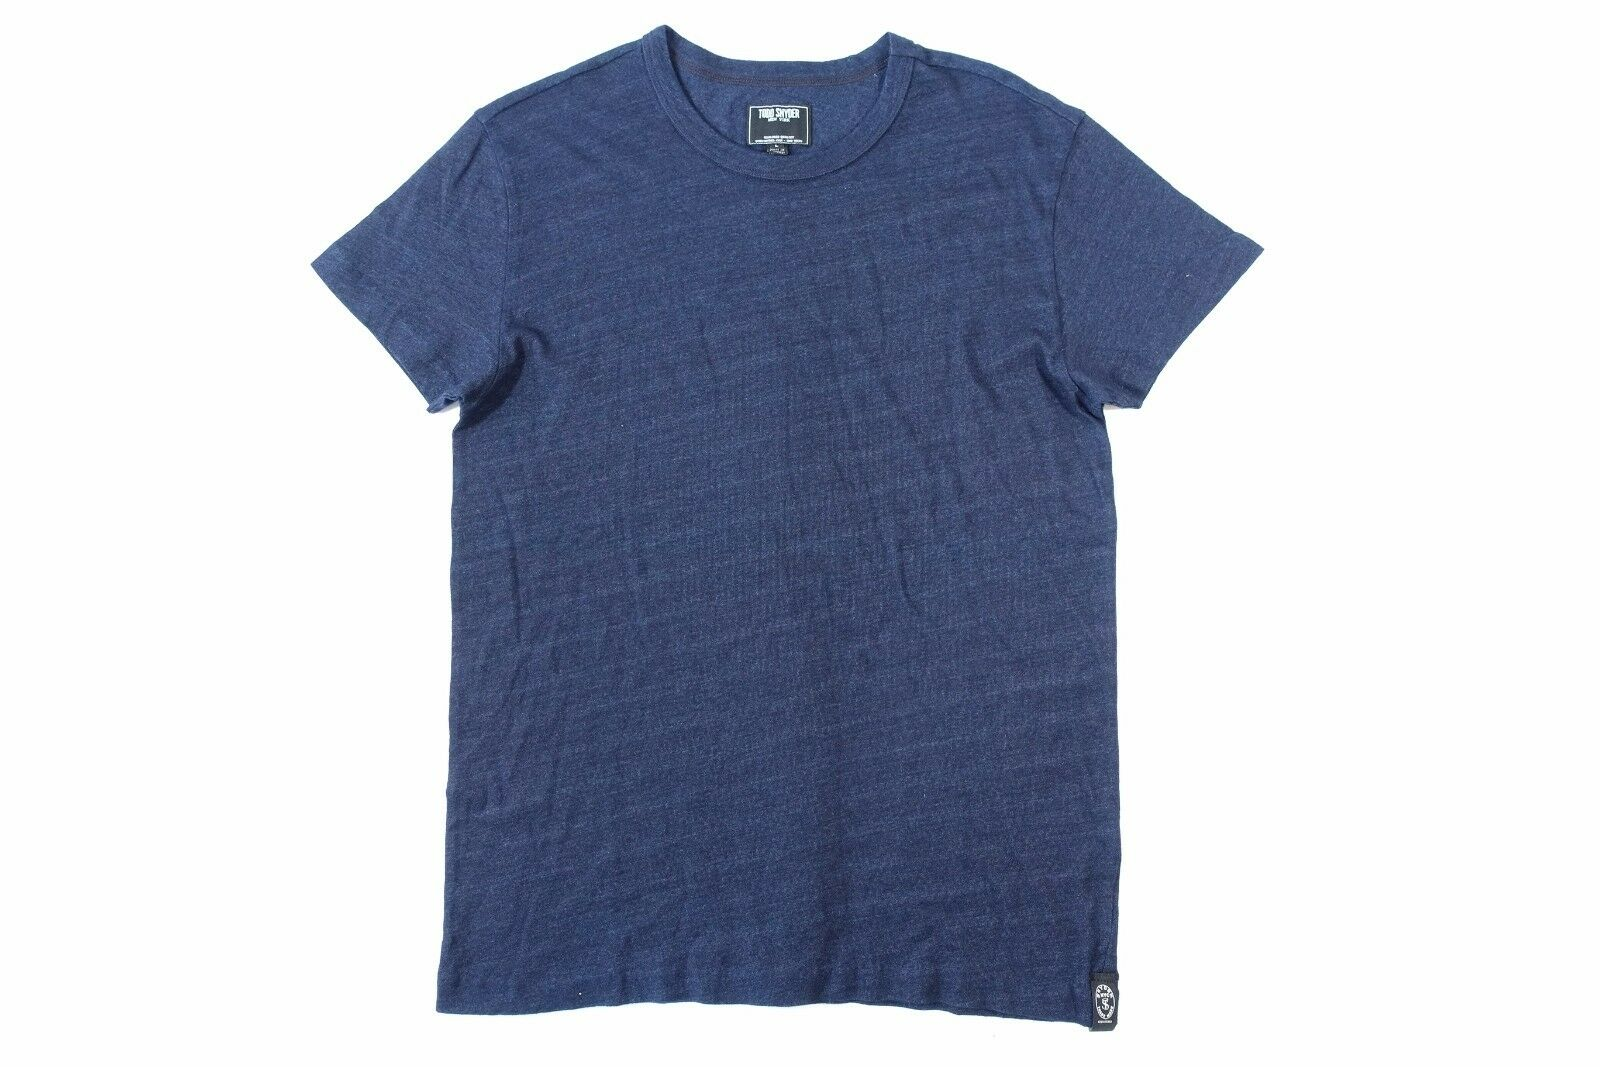 TODD SNYDER NEW YORK NAVY blueE XL SOFT TSHIRT MENS NWT NEW